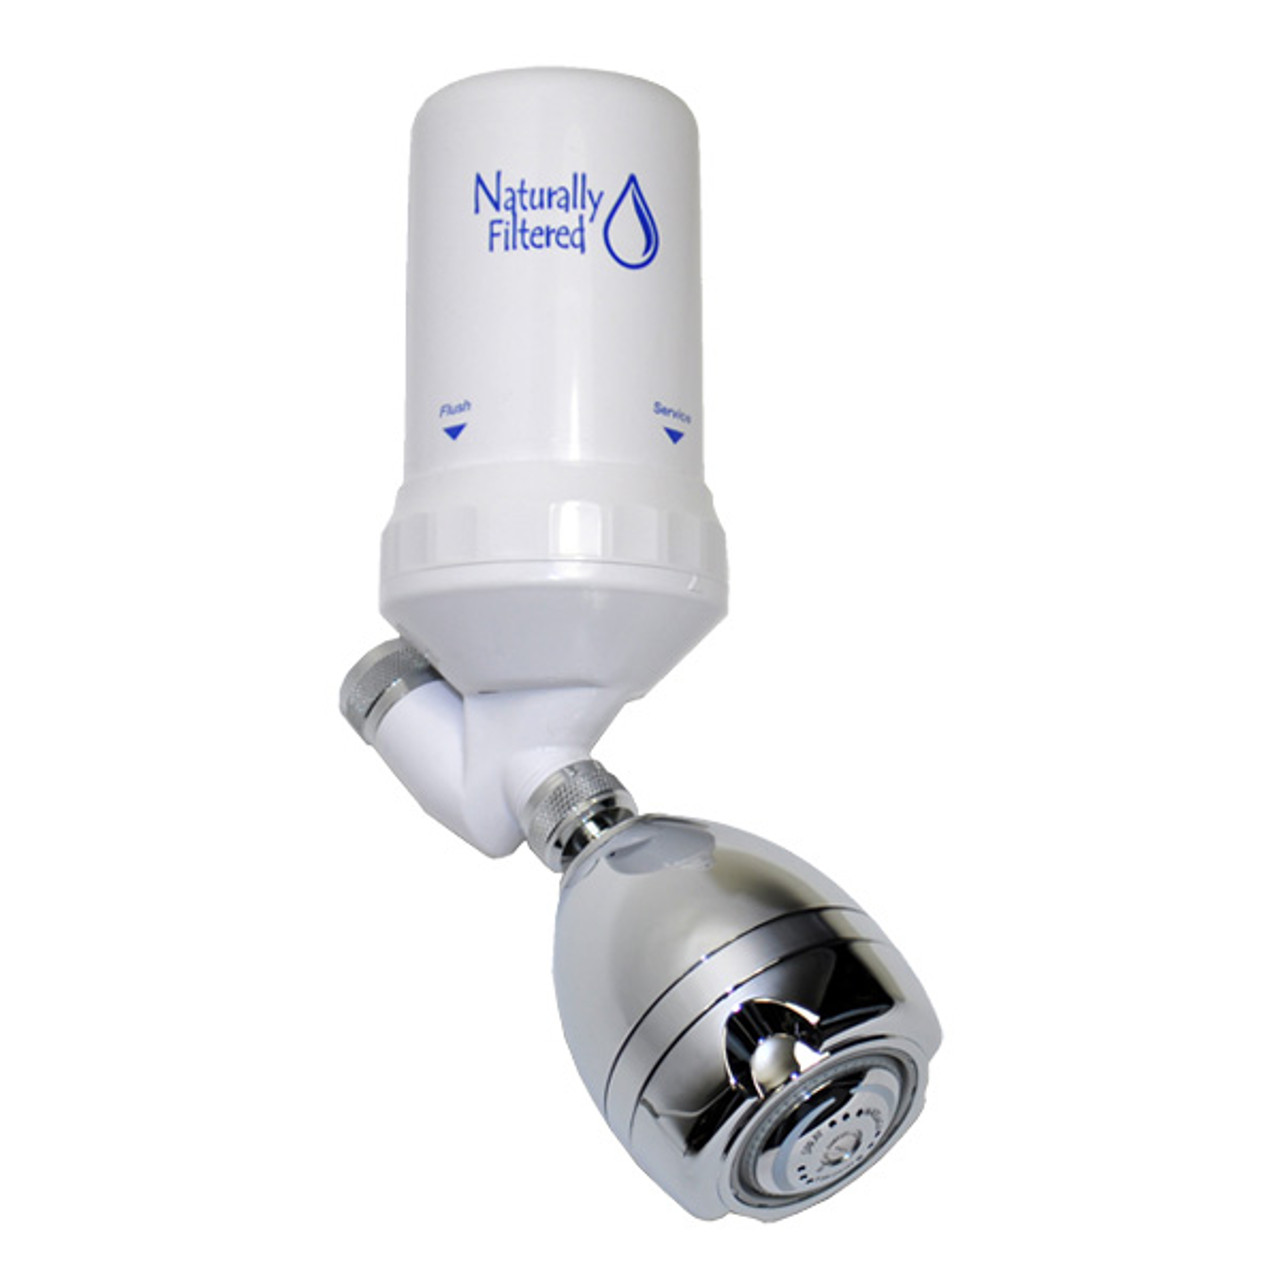 Long lasting filter life up to 2 yrs Shower Head Chlorine /& Heavy Metal Filter